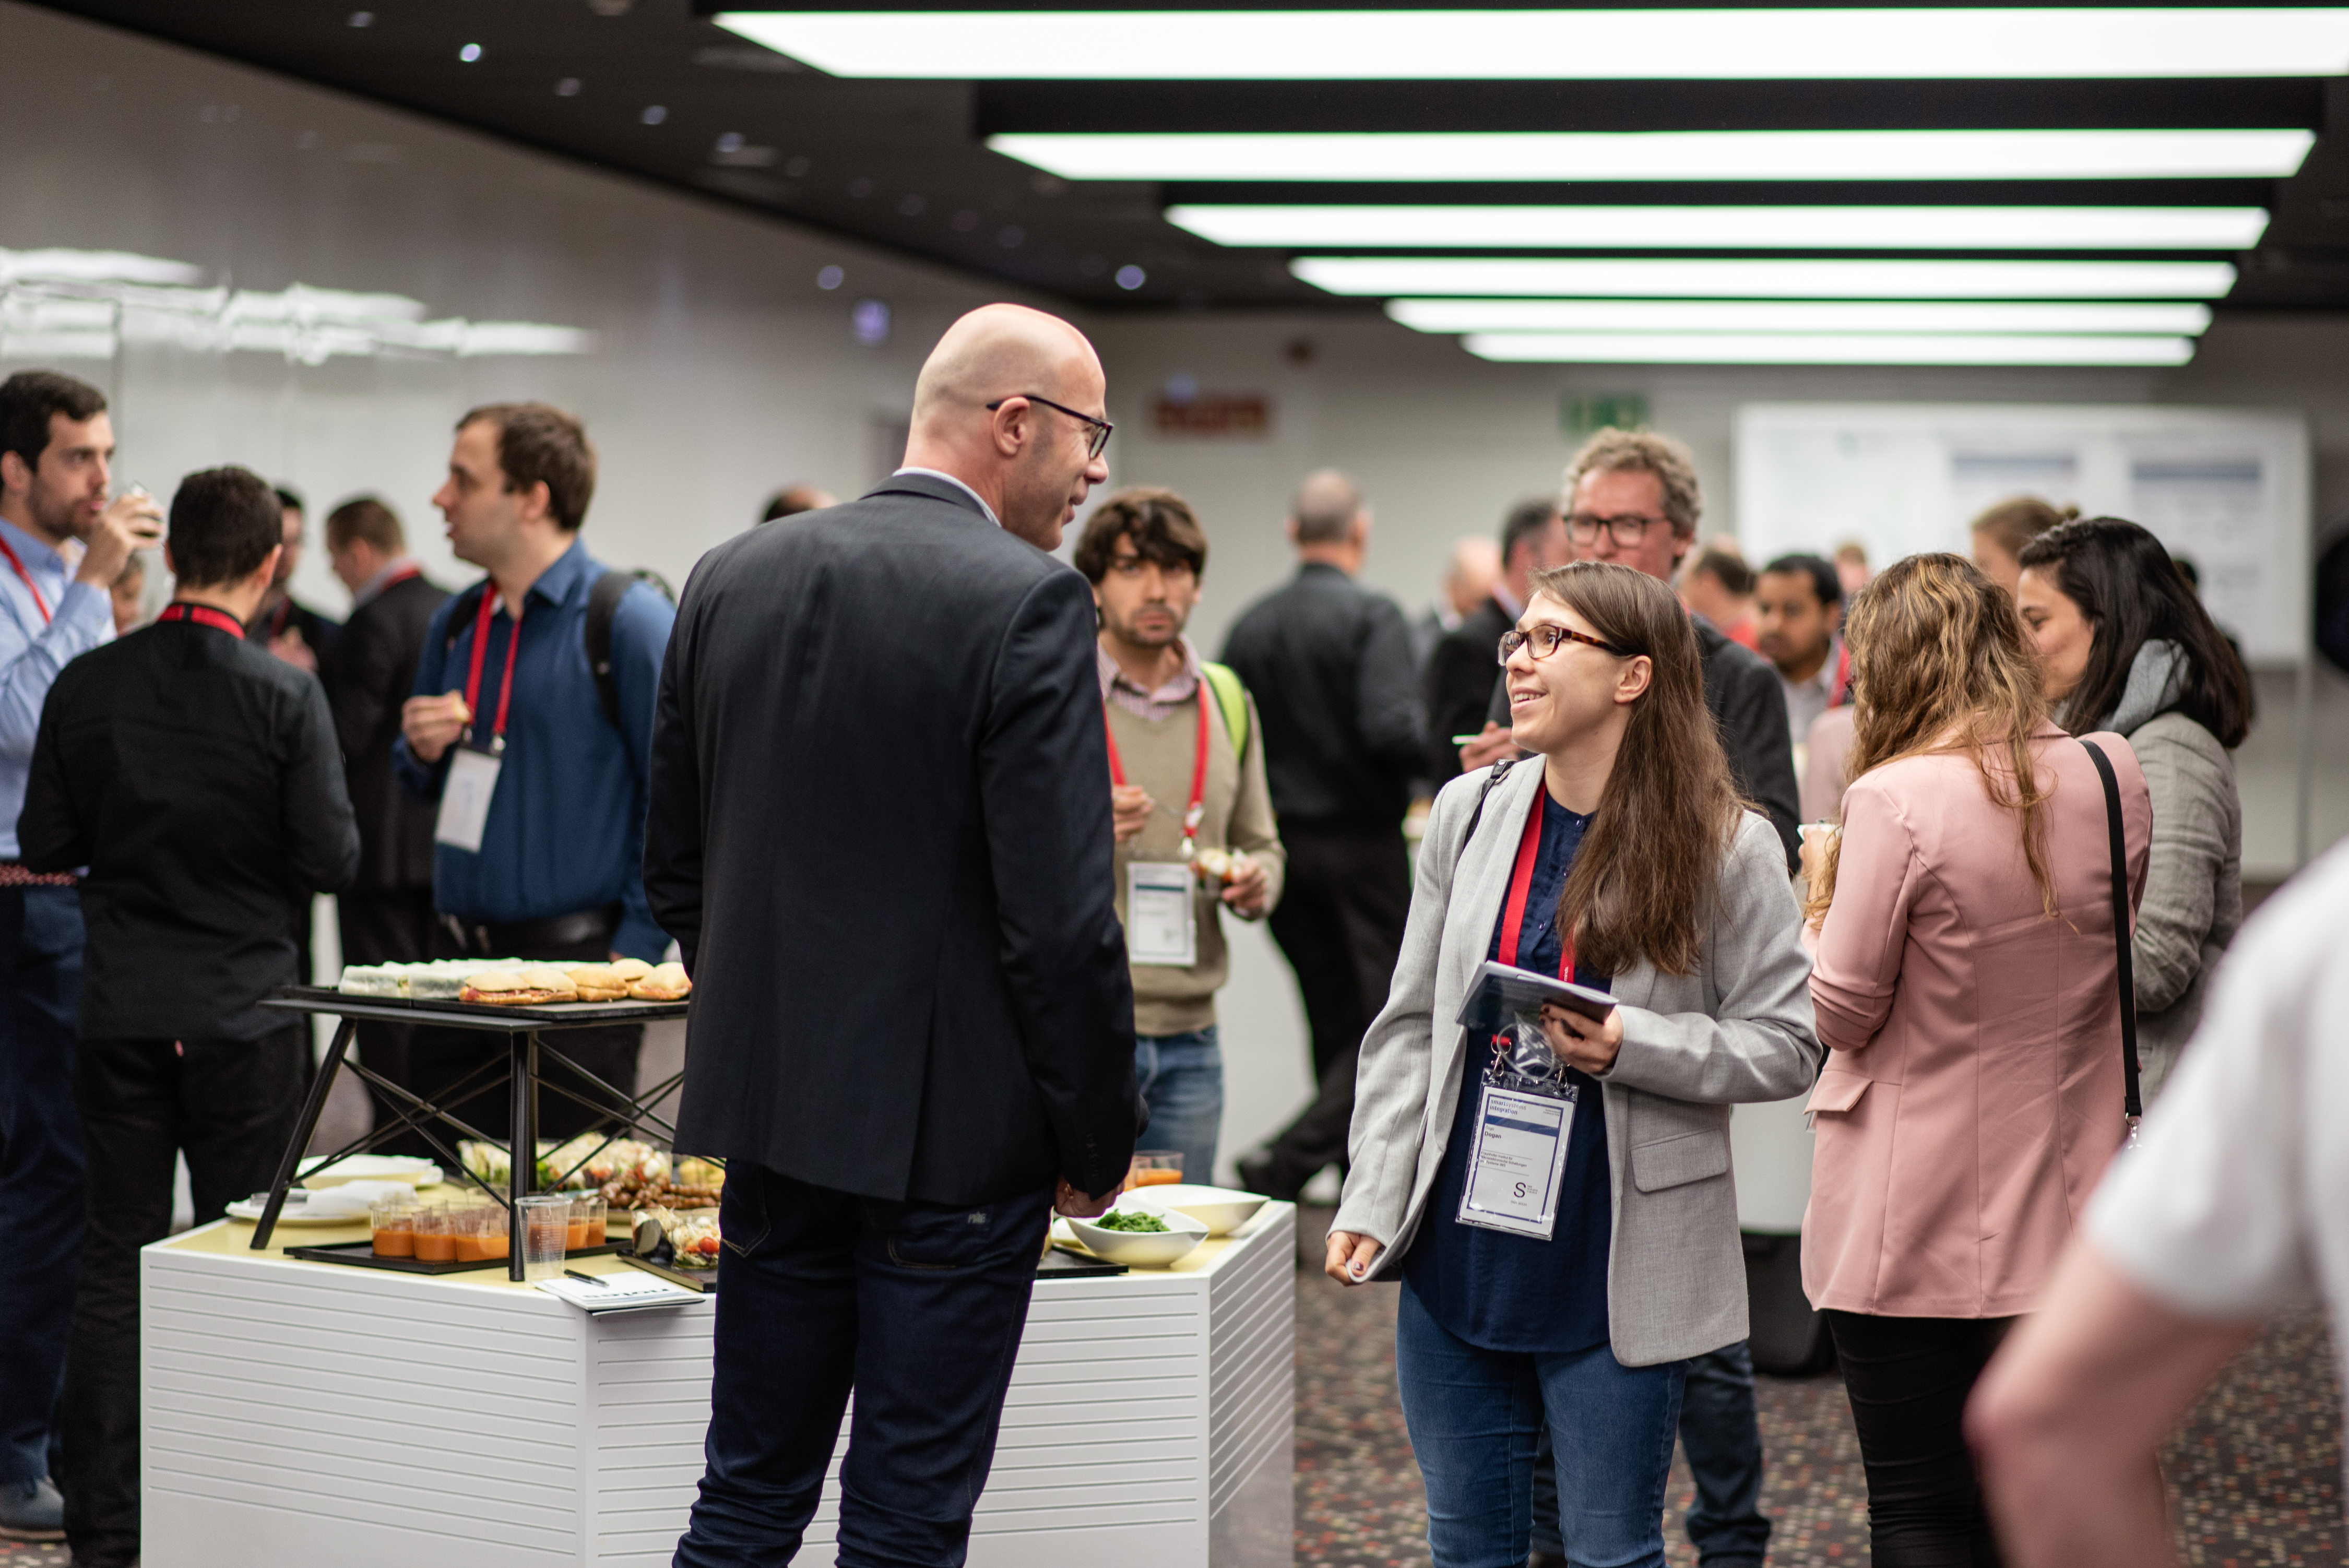 Exhibition and poster presentations Smart Systems Integration 2019